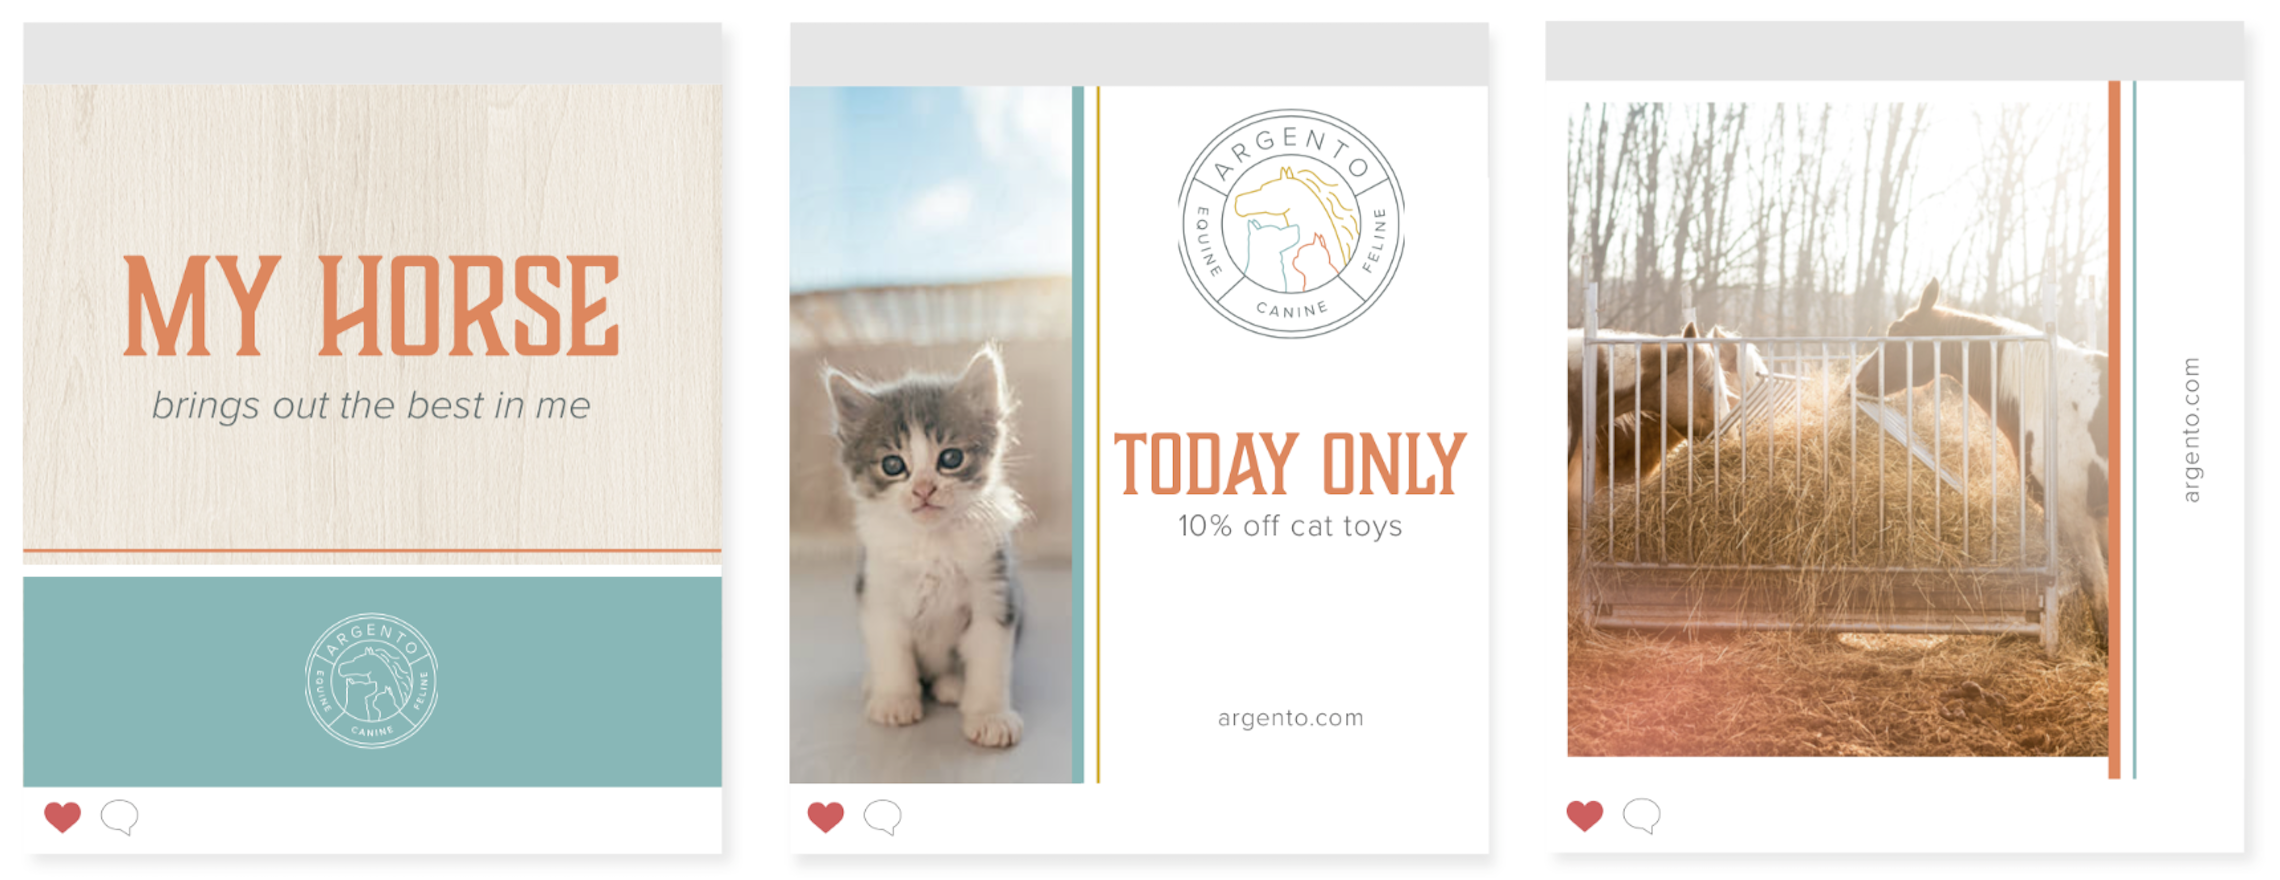 cat and dog instagram posts